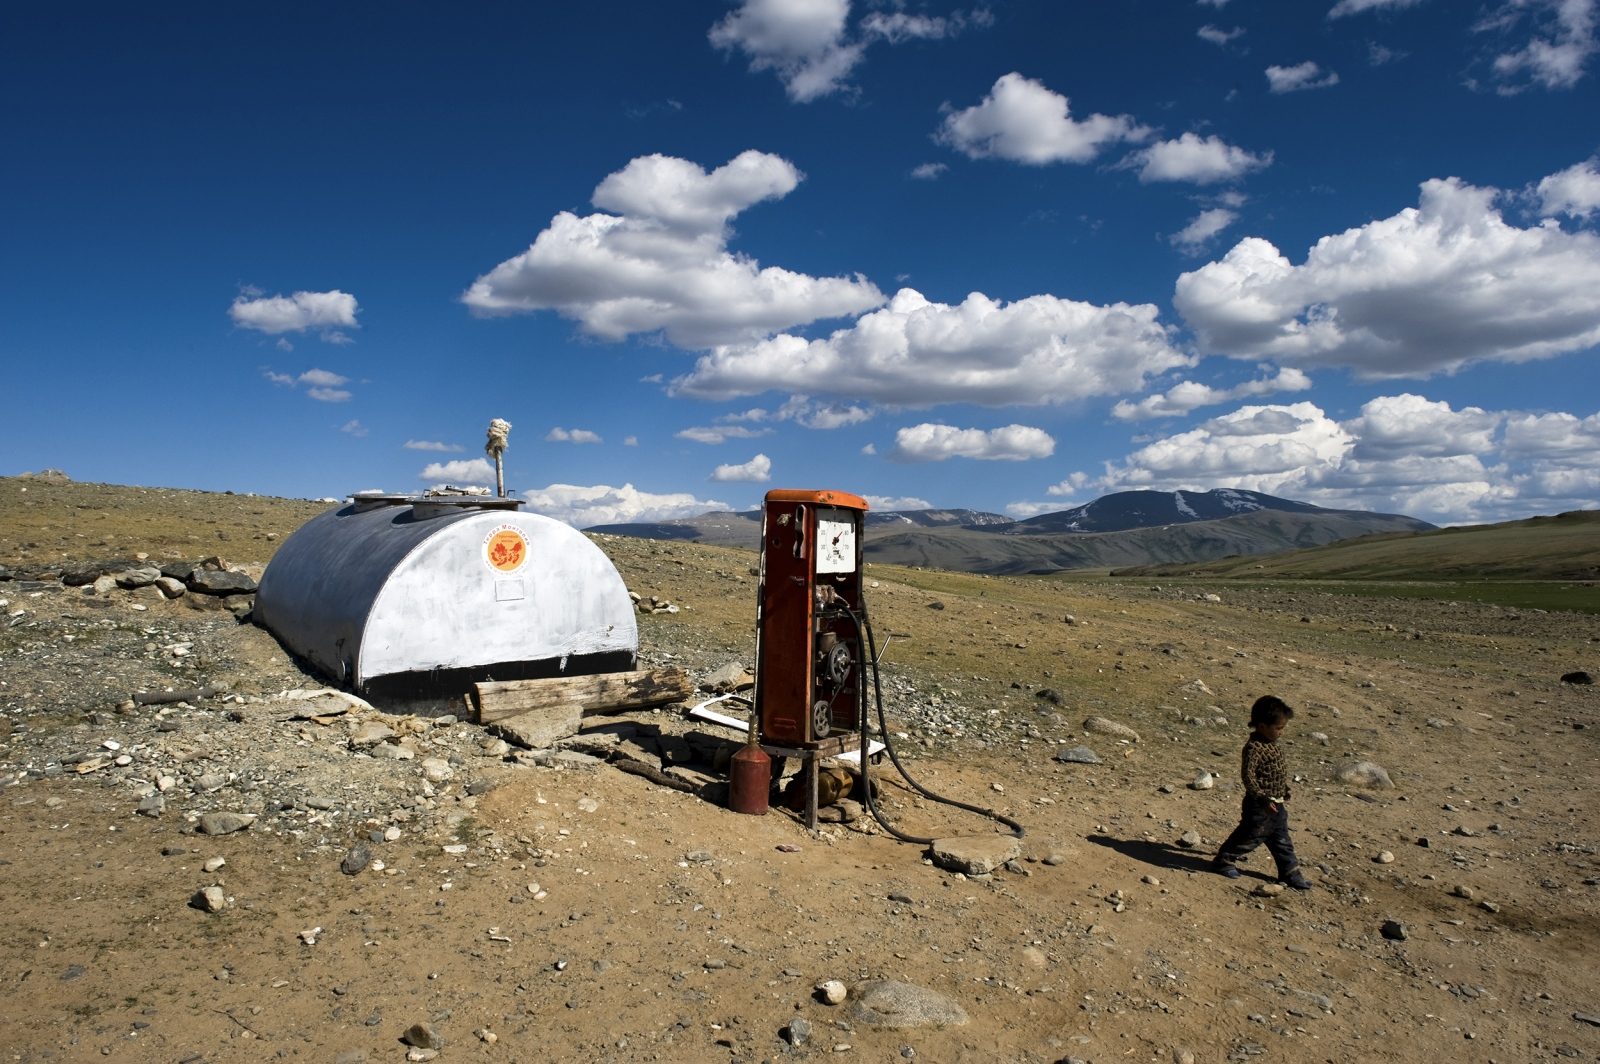 Mongolia. Petrol station in the Altai region of Western Mongolia.